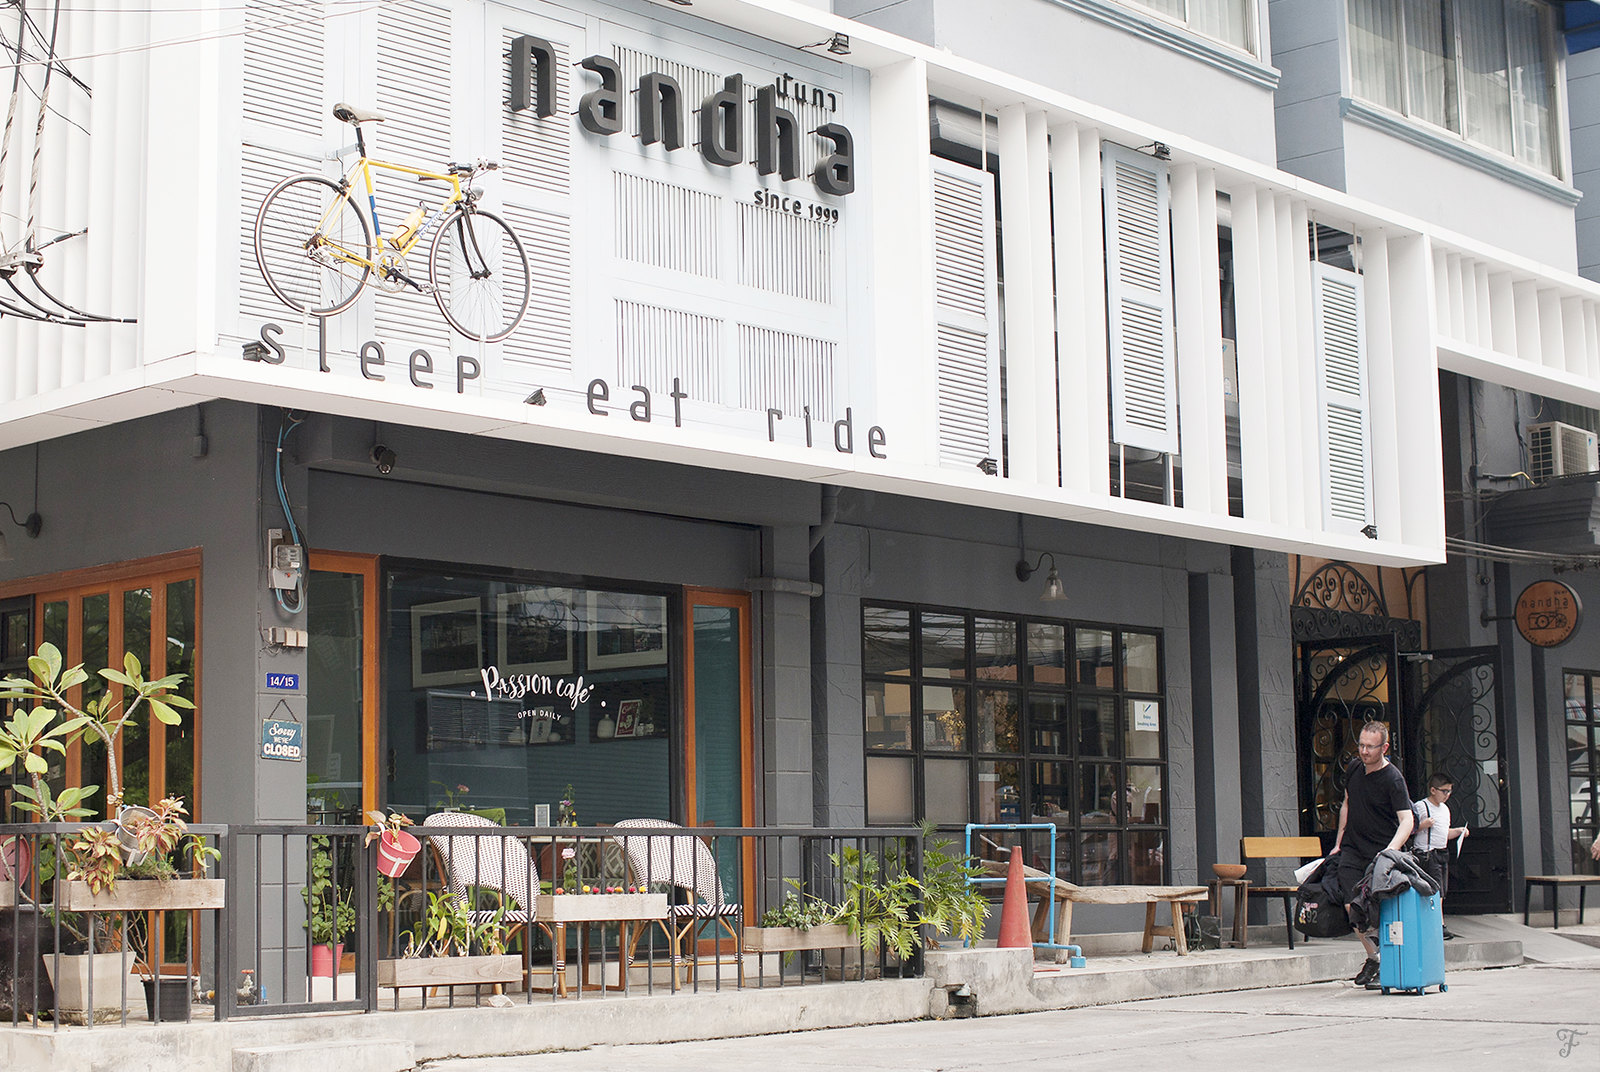 bangkok thailand fensismensi blog nandha hotel 4th floor drip bar coffee street